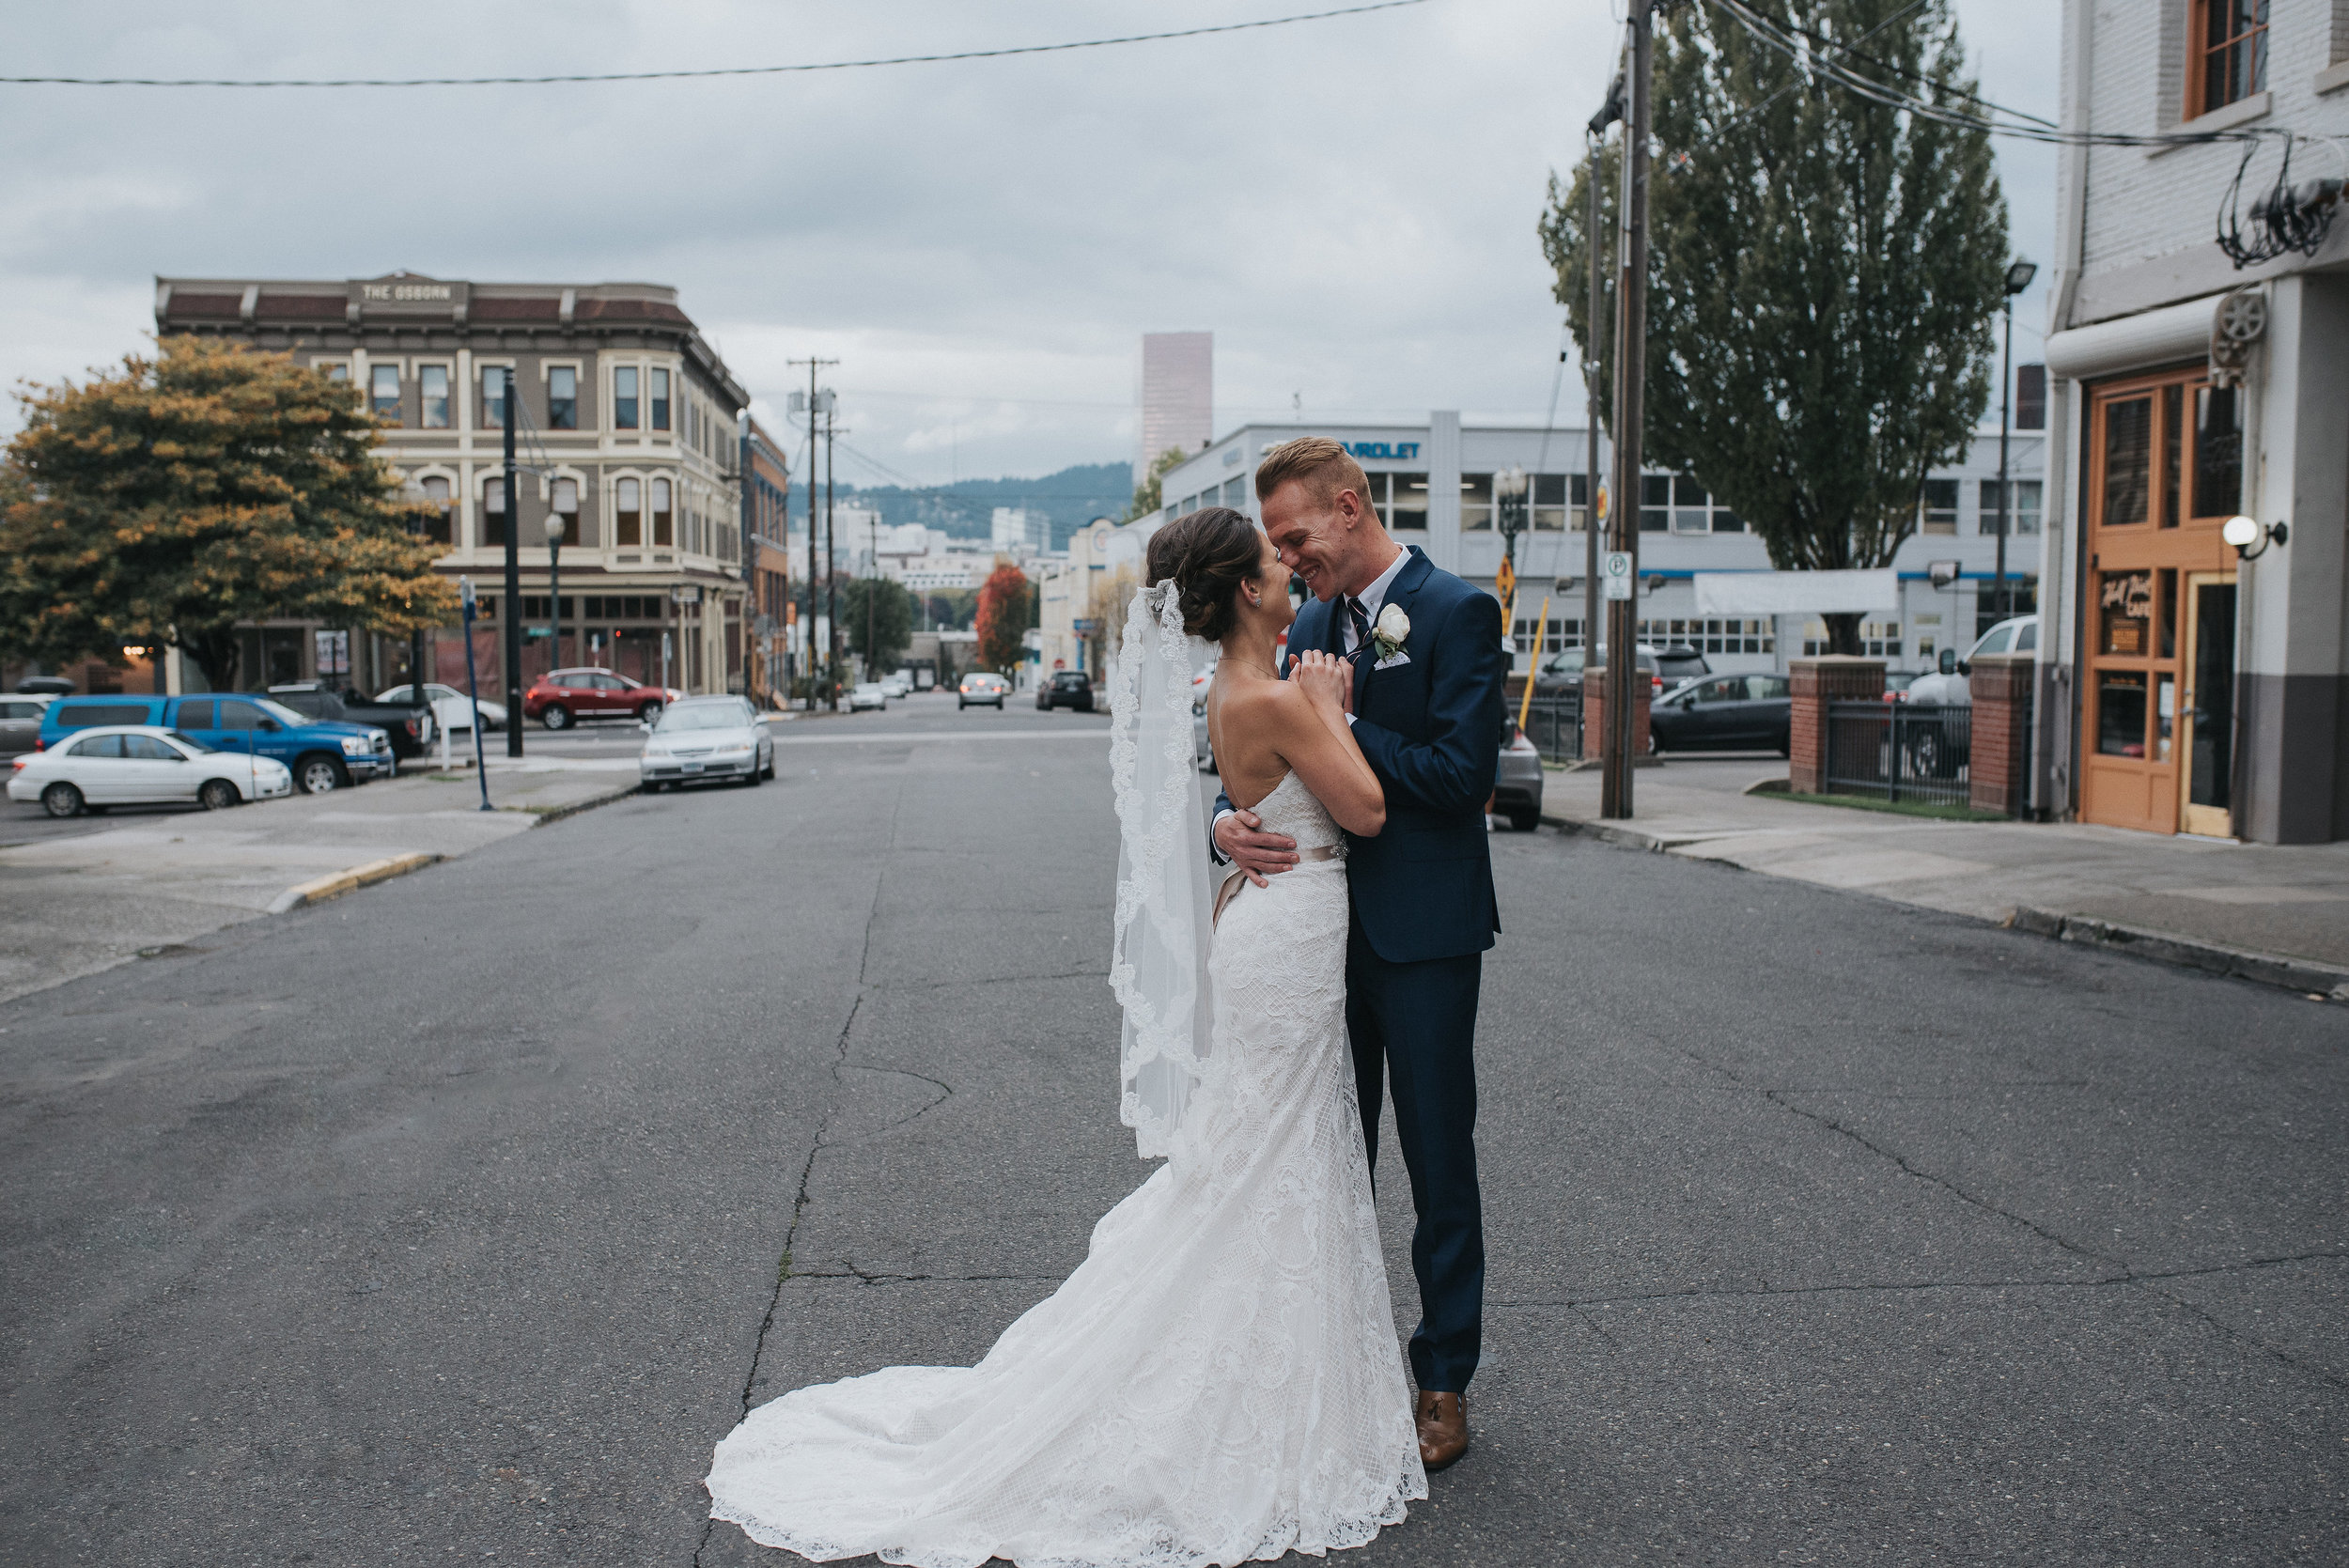 portland-wedding-venue-12.jpg